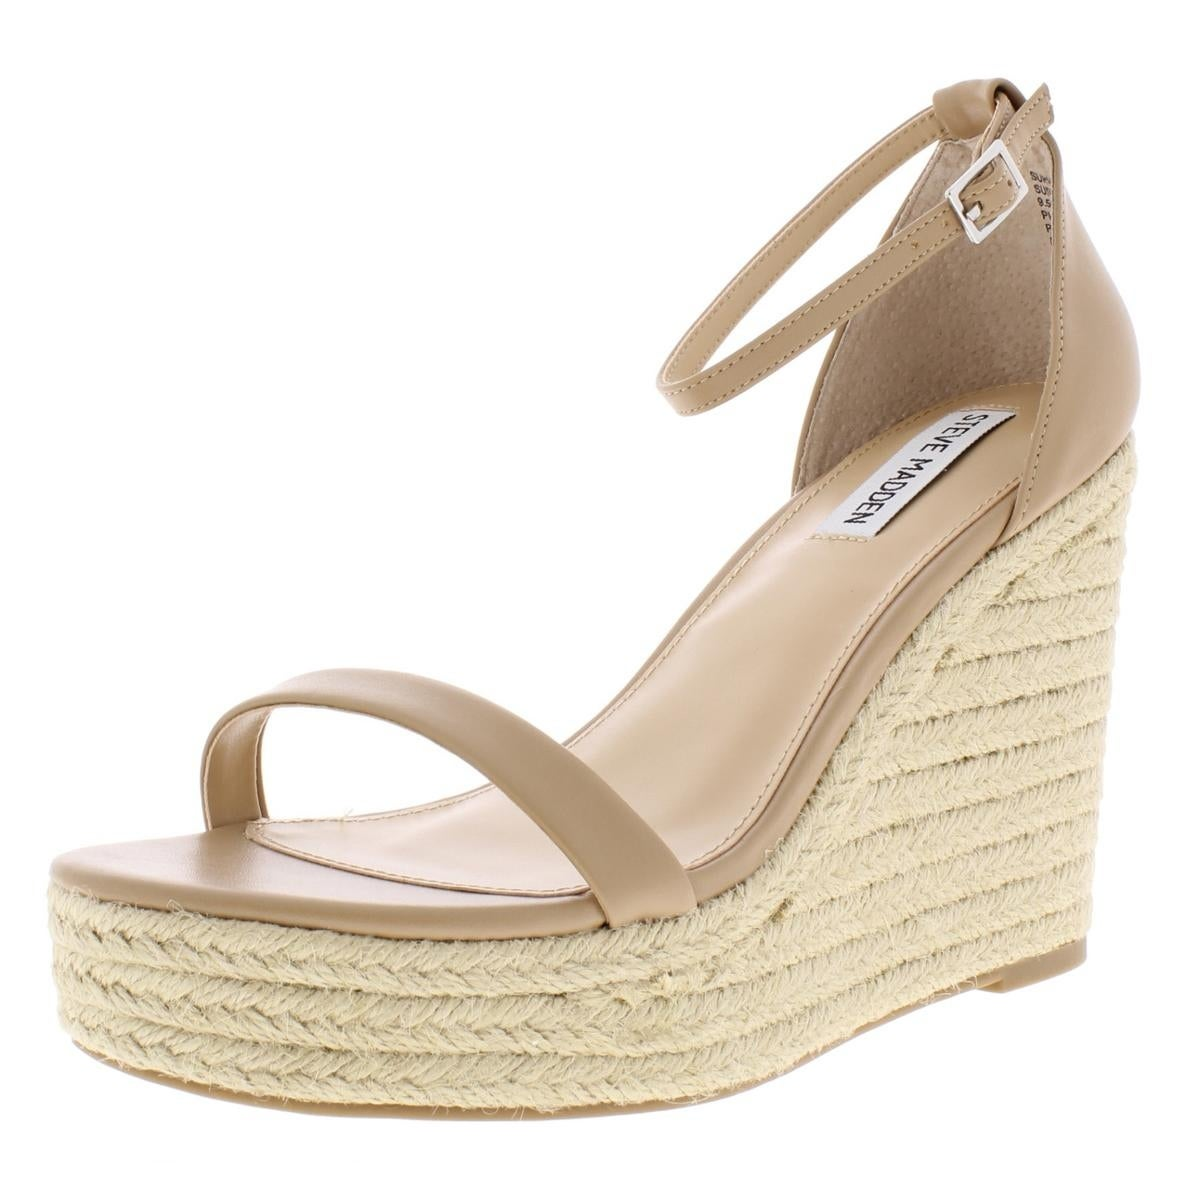 1bd9d6bd2ad Steve Madden Womens Survive Wedges Padded Insole Espadrille